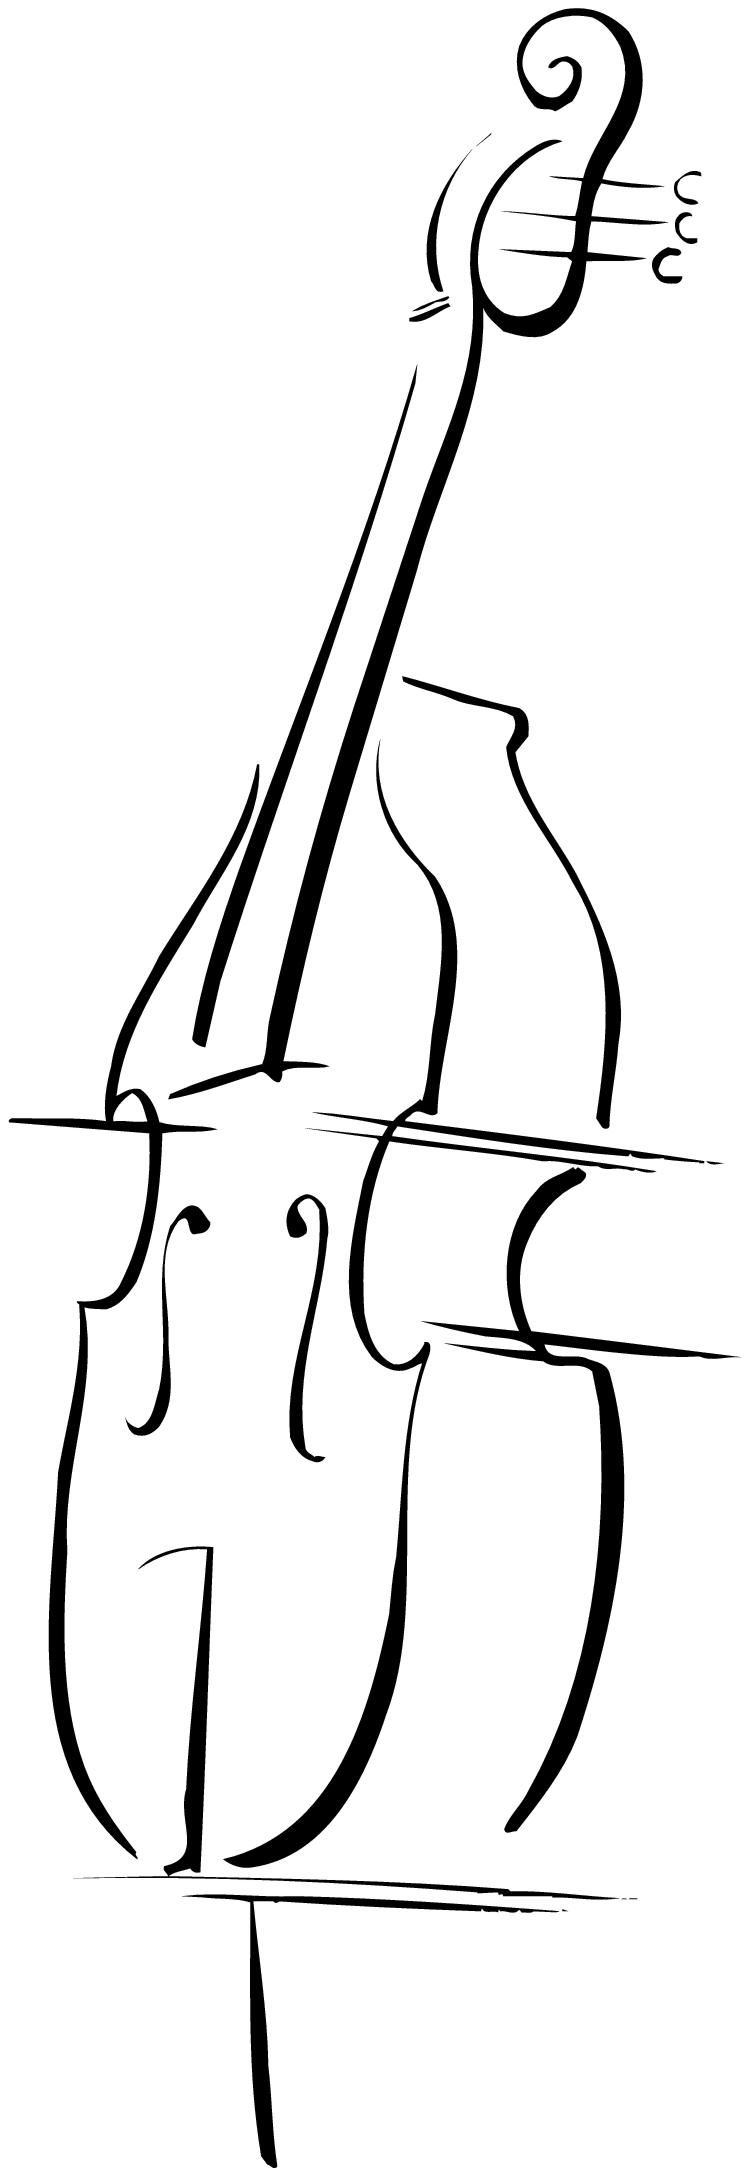 Cello Vector Cartoon Art Designs Compilation We Are Currently Seeking Graphic Designers And Sales People